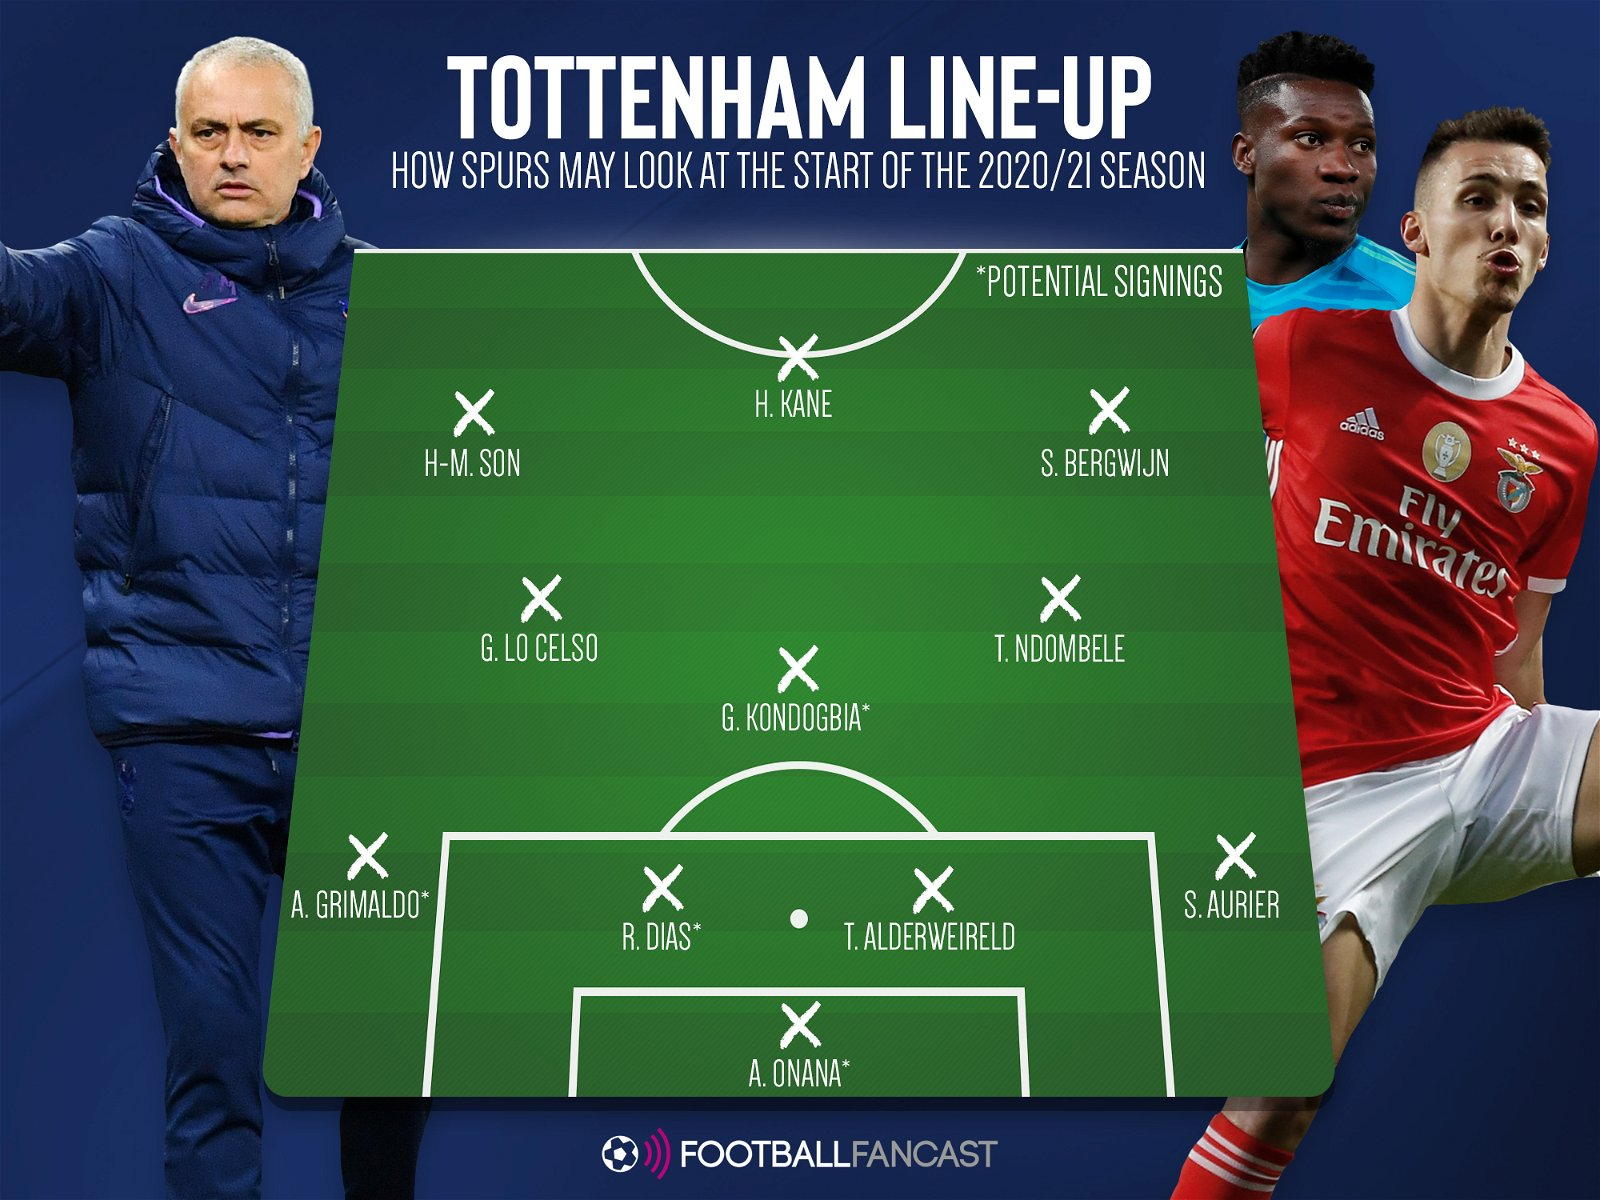 No Alli Or Dier Levy May Have To Spend 200m How Spurs Xi Could Look Next Season Opinion Footballfancast Com